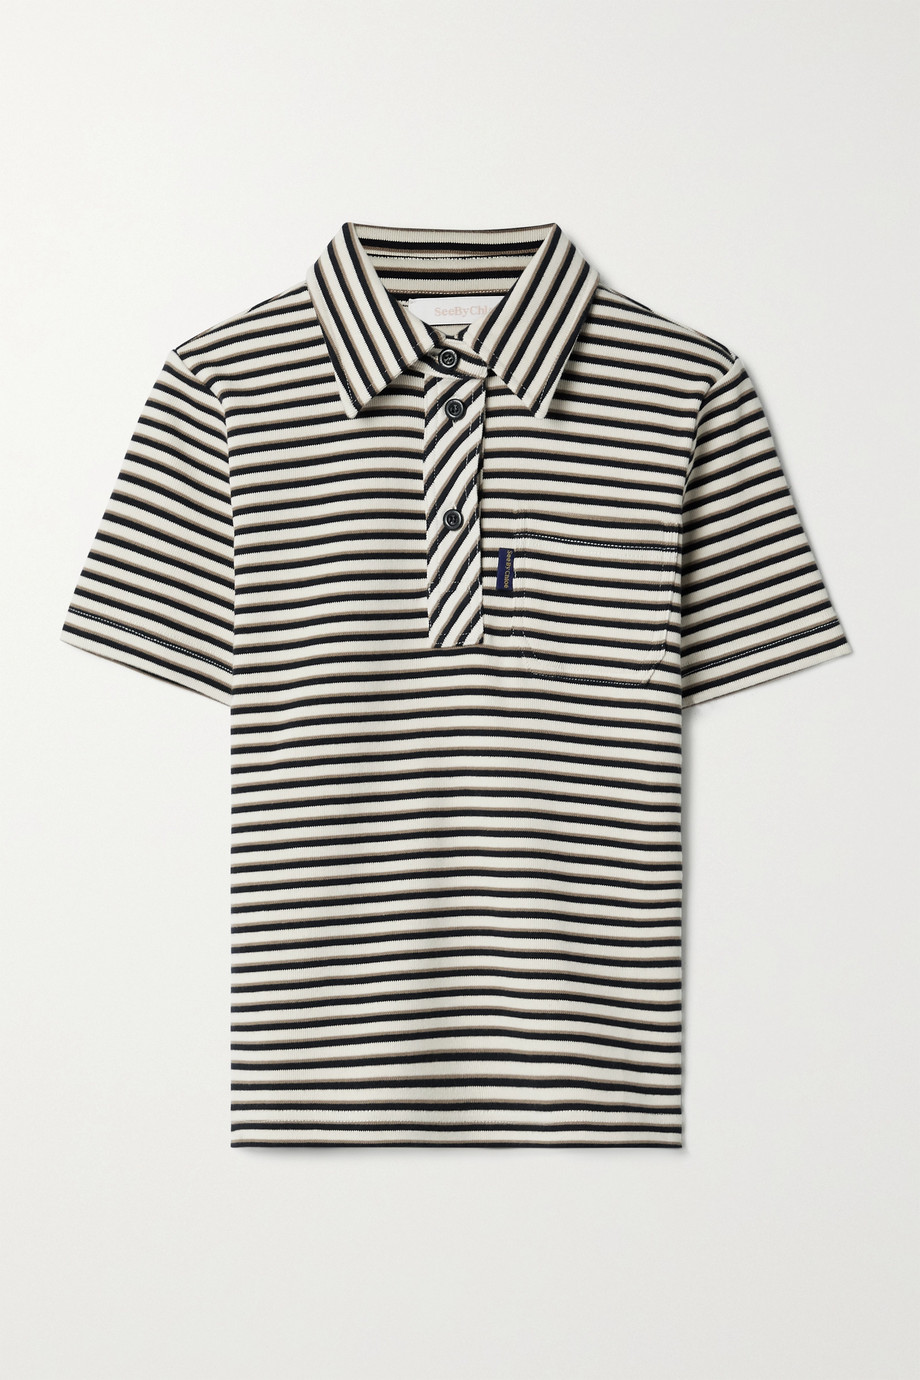 SEE BY CHLOÉ Striped ribbed cotton polo shirt